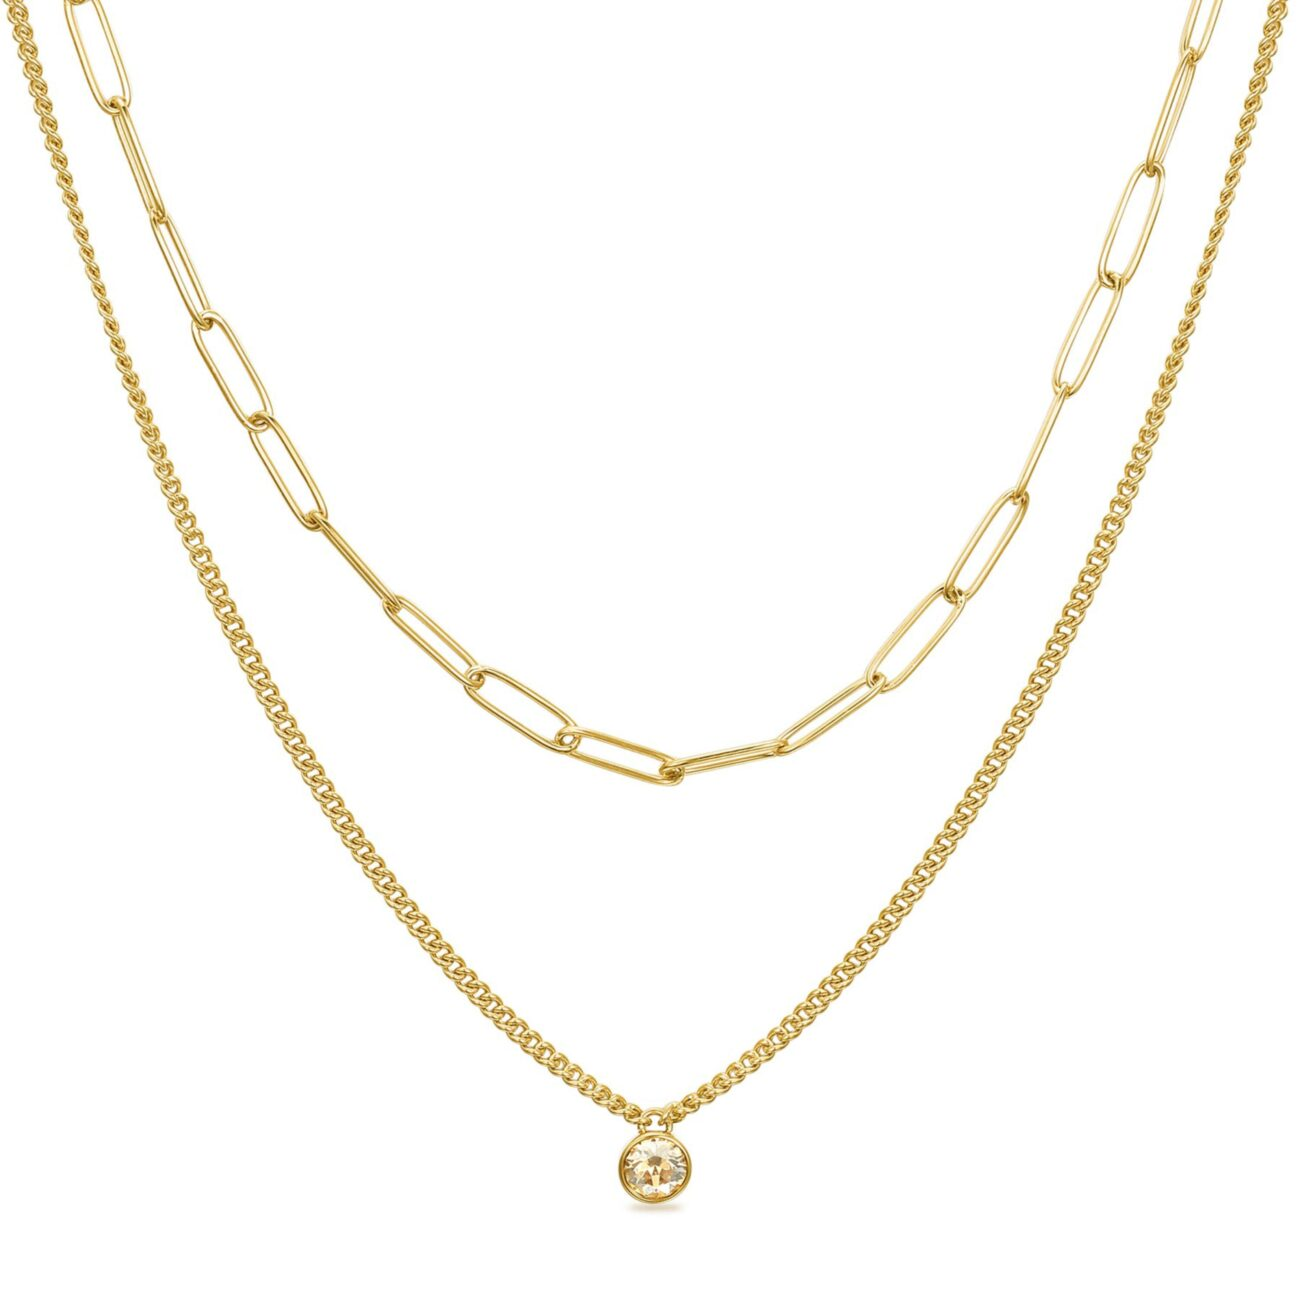 316L stainless steel double necklace, gold finishes with golden shadow Swarovski crystals.